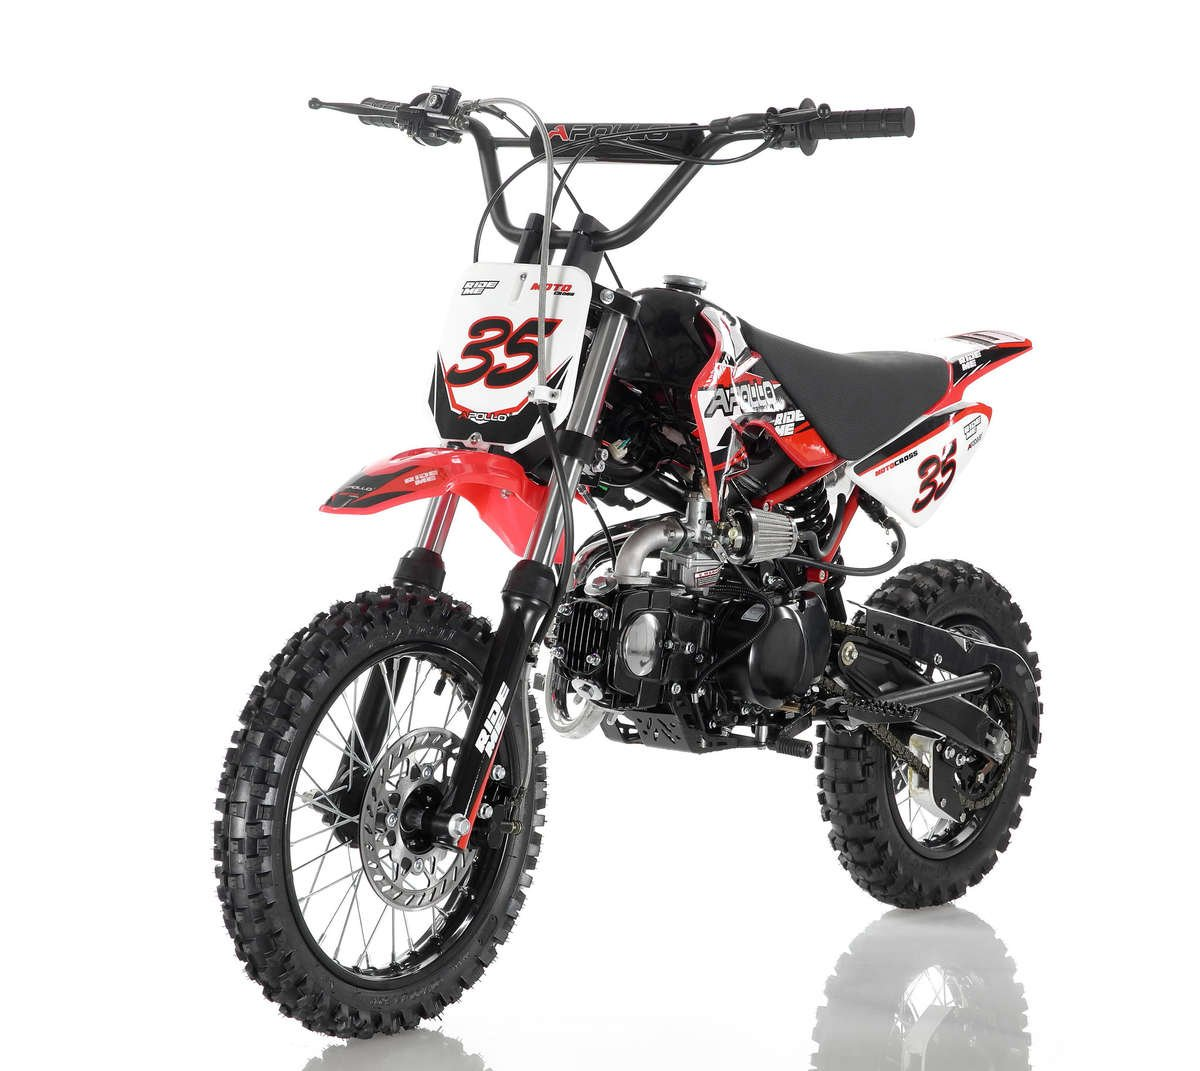 Apollo 35 Dirt Bike 125cc Red